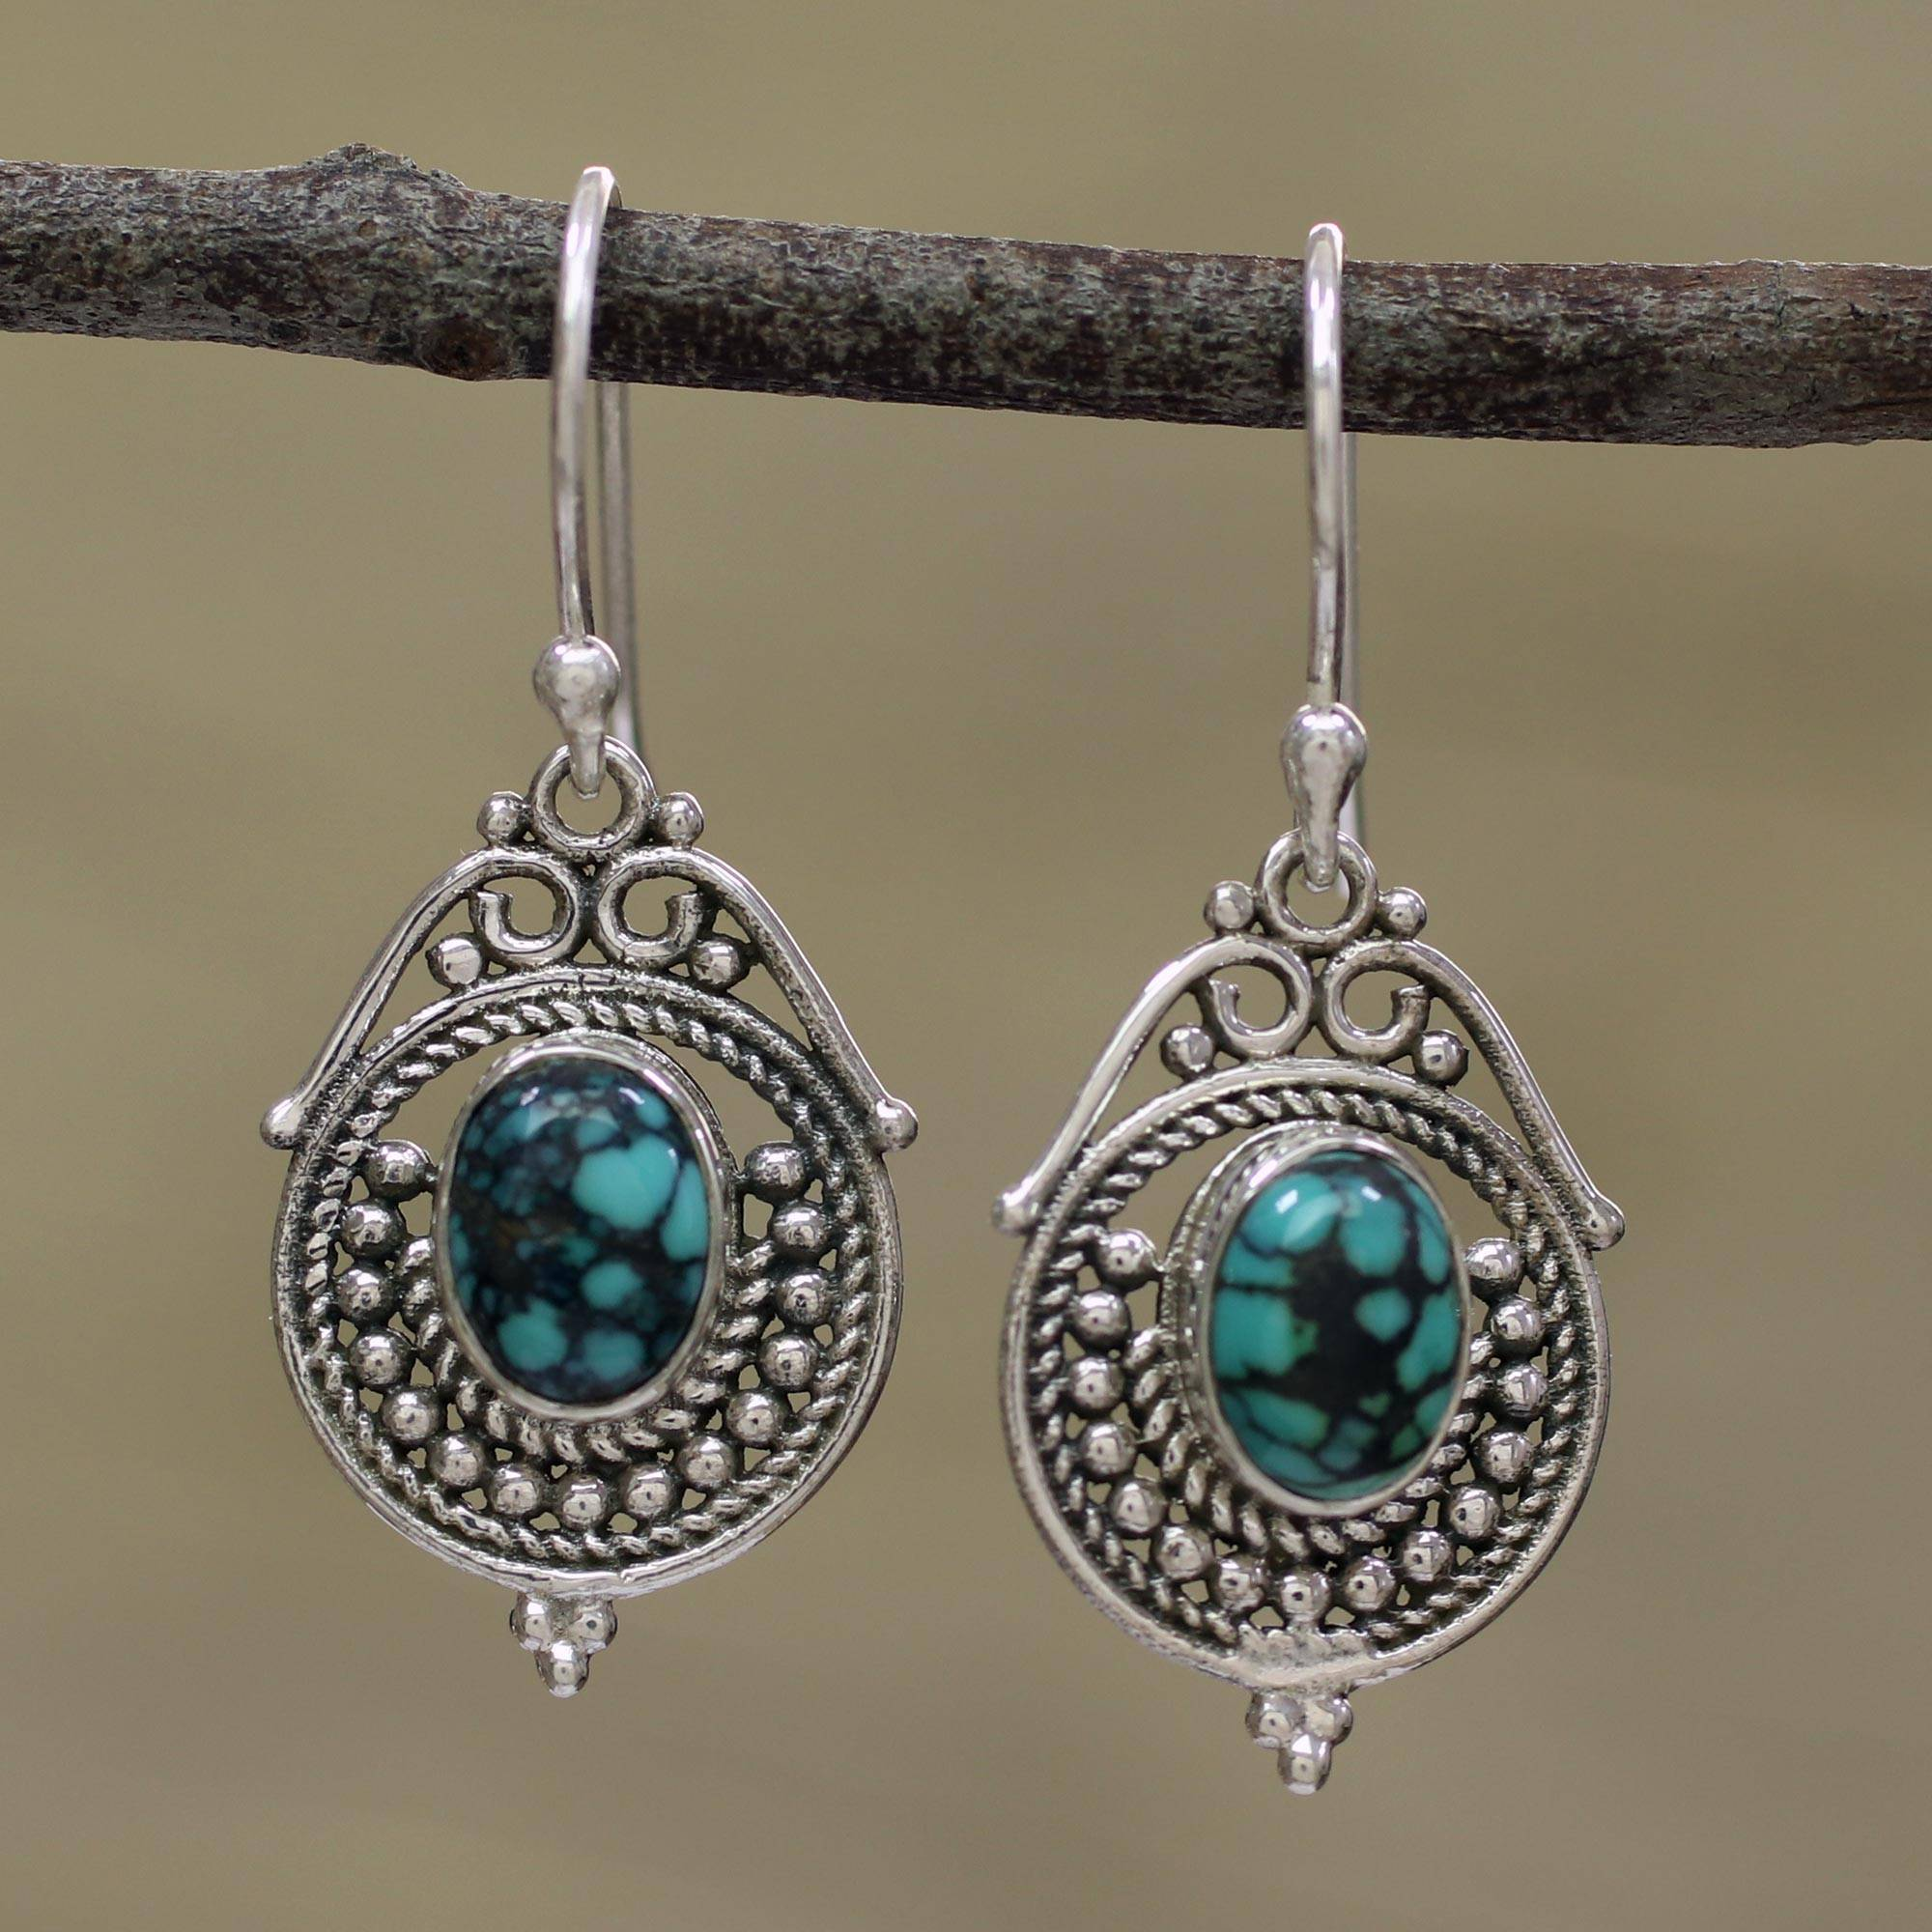 c0d4fdafc Sterling Silver and Composite Turquoise Earrings from India,